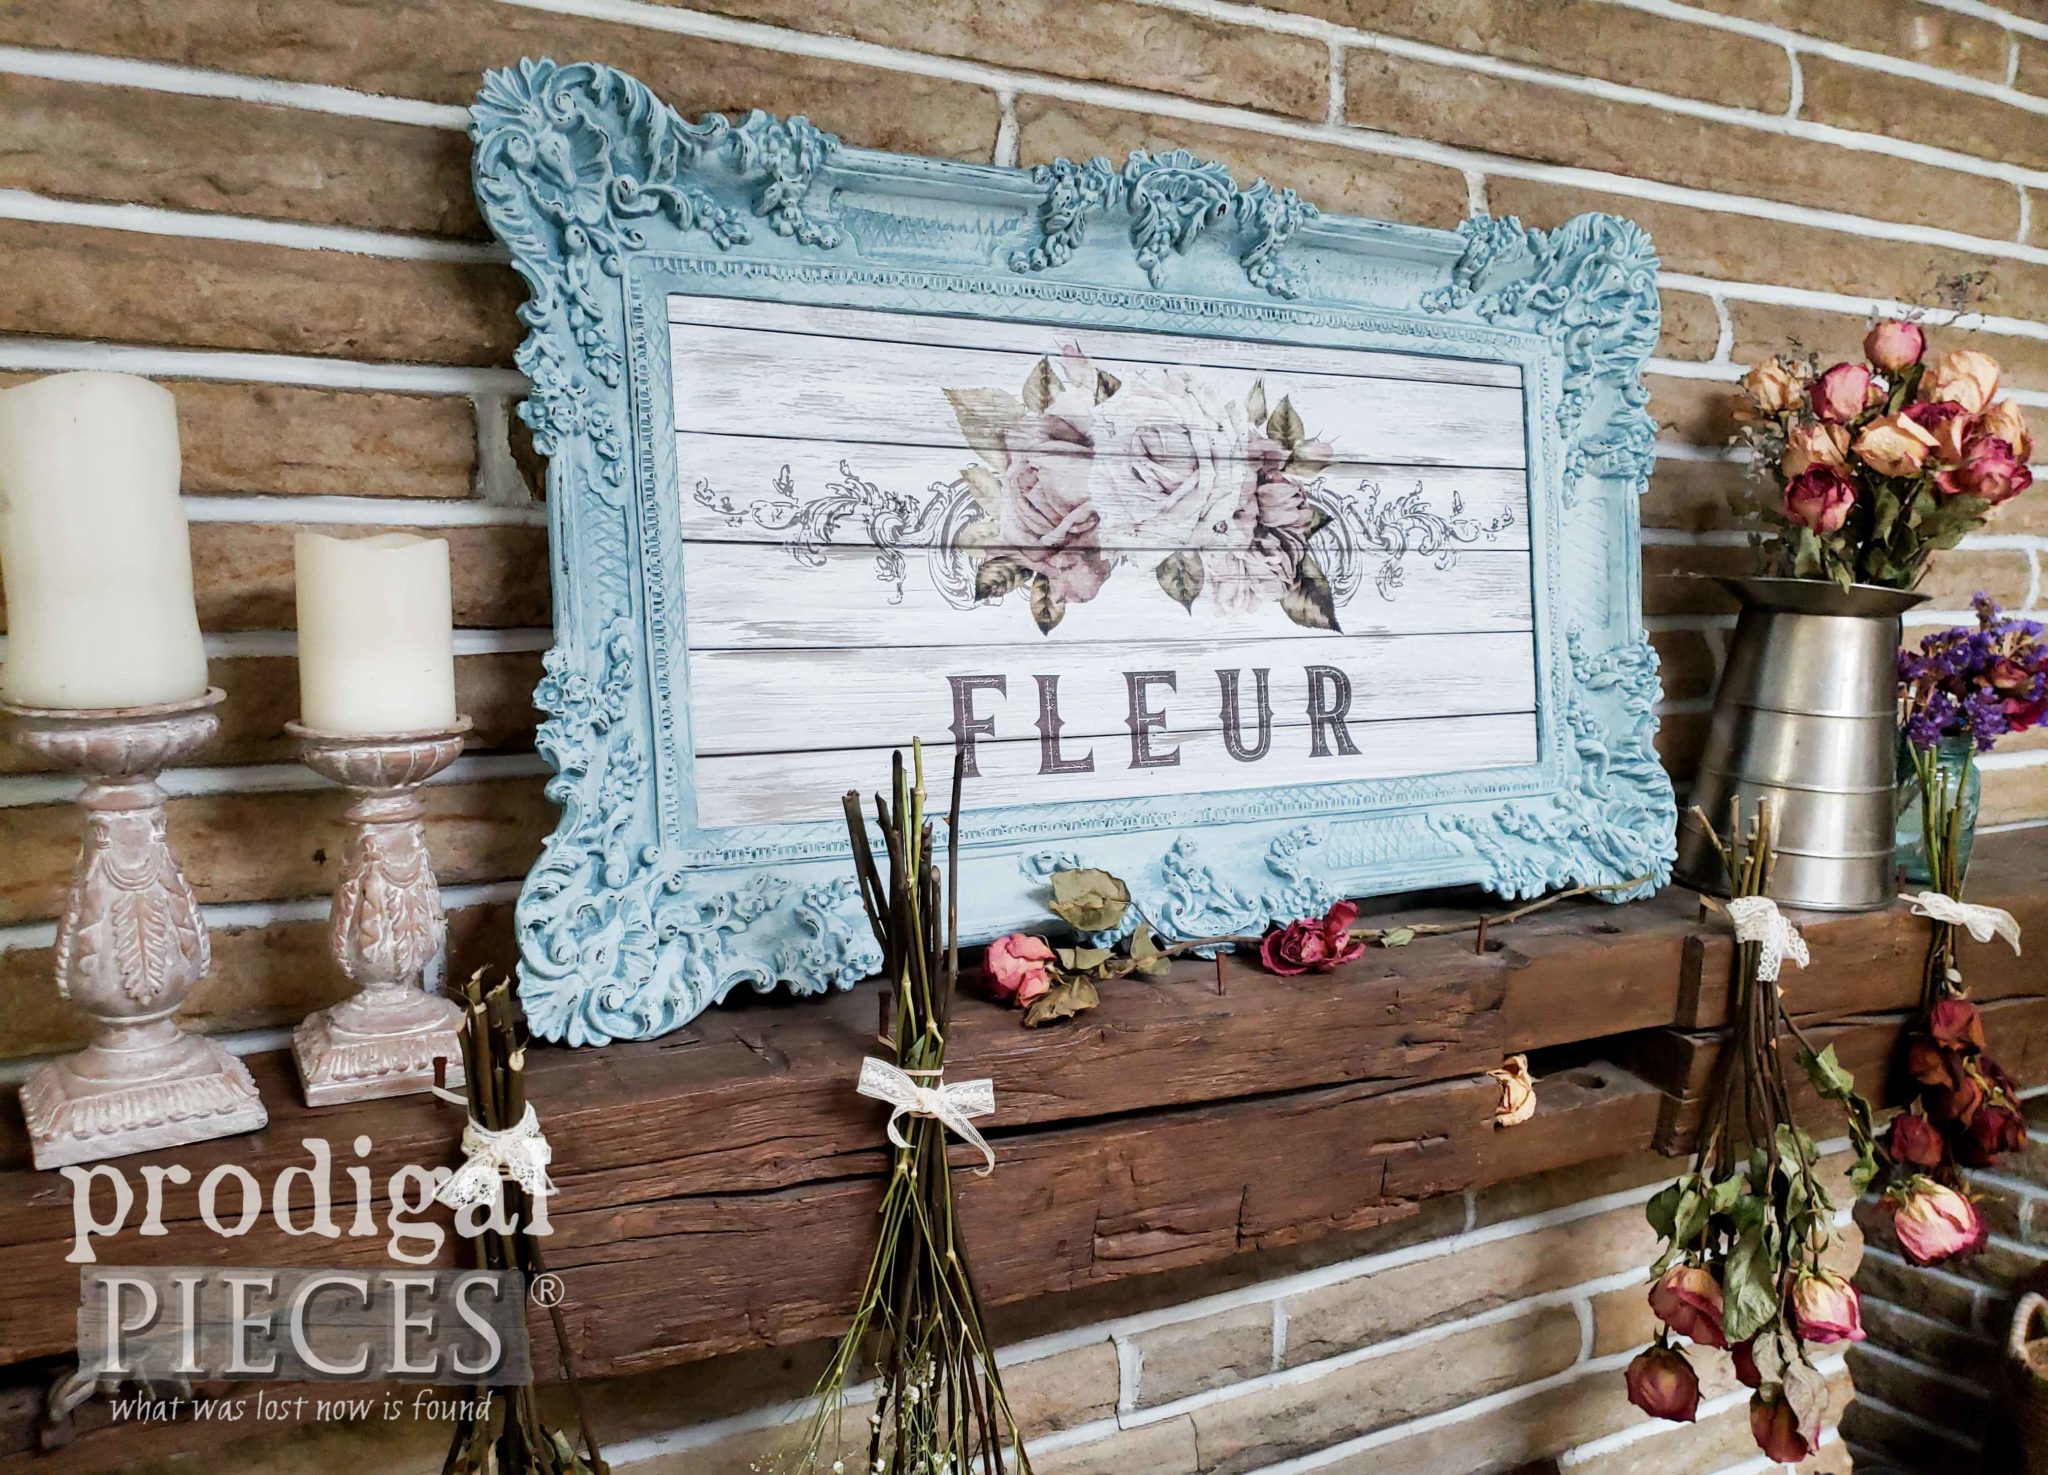 Aqua Blue Shabby Chic Wall Art Created by Larissa of Prodigal Pieces with video tutorial at prodigalpieces.com #prodigalpieces #diy #shabbychic #home #homedecor